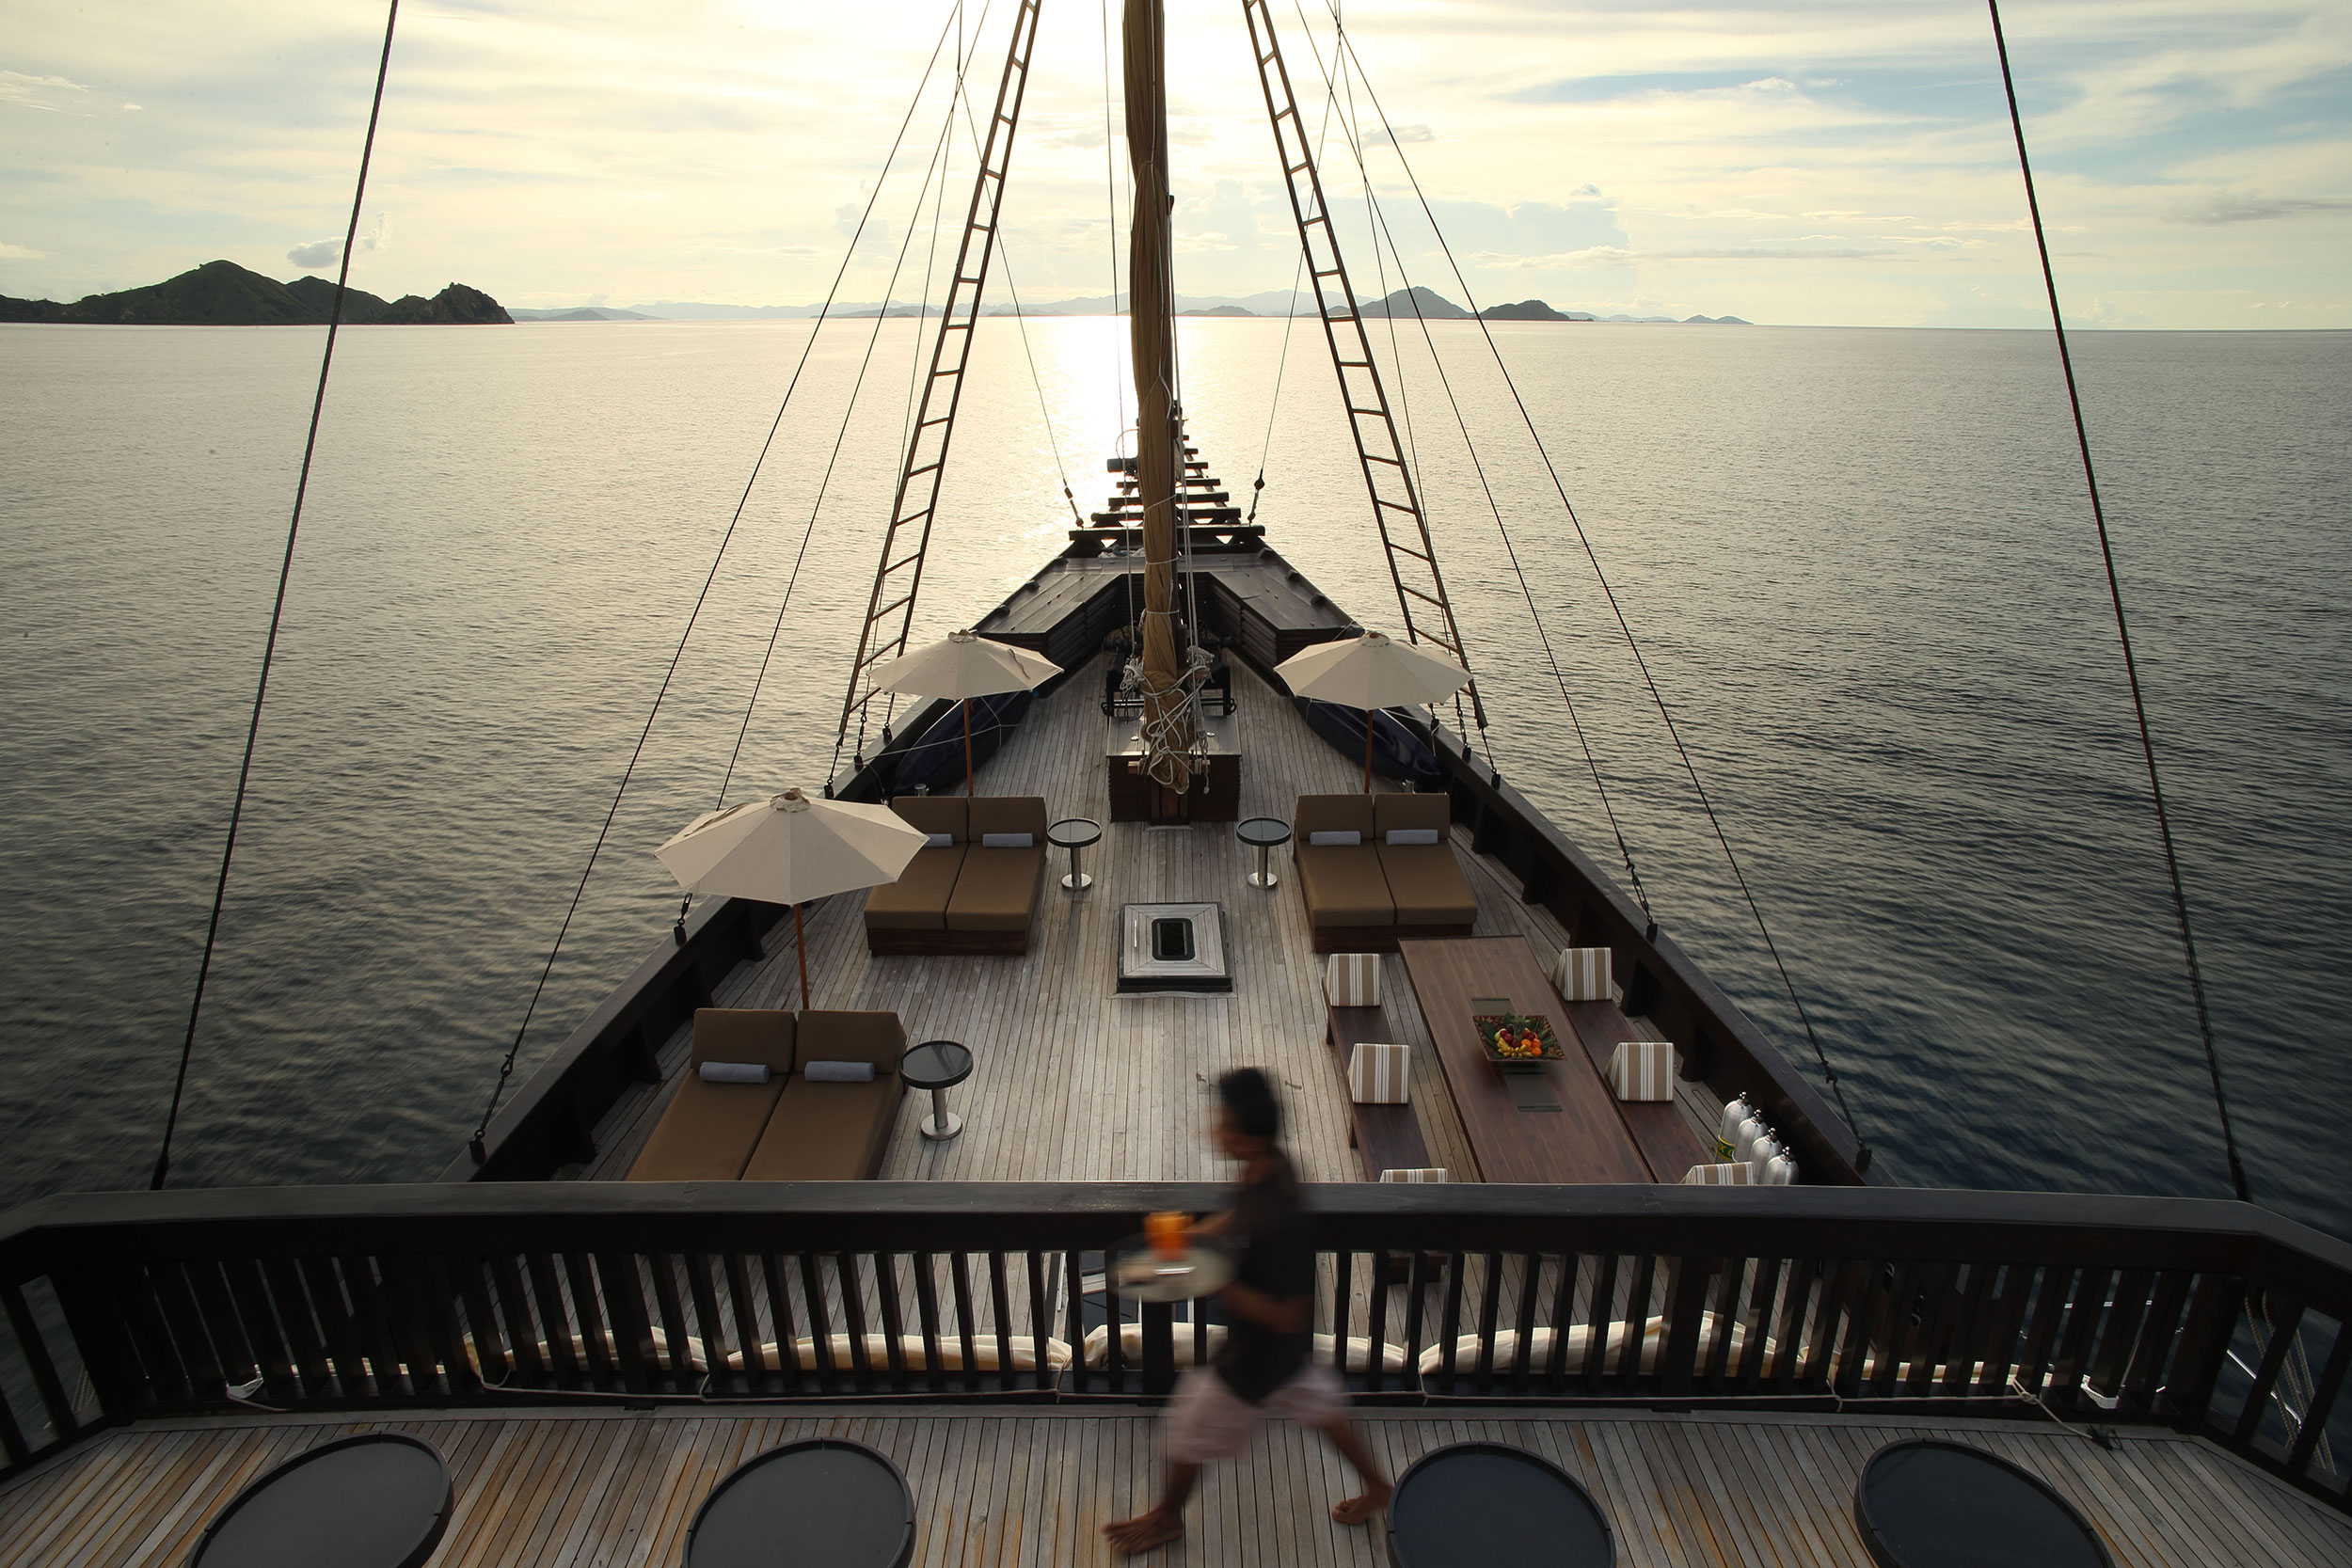 Deck view aboard the Alila Purnama.